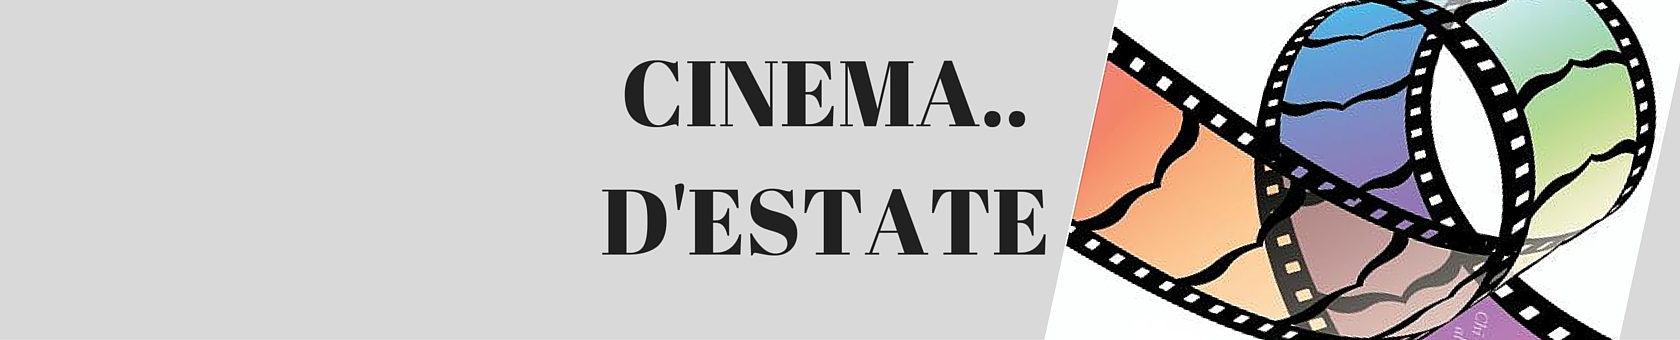 RASSEGNA CINEMATOGRAFICA ESTATE 2016